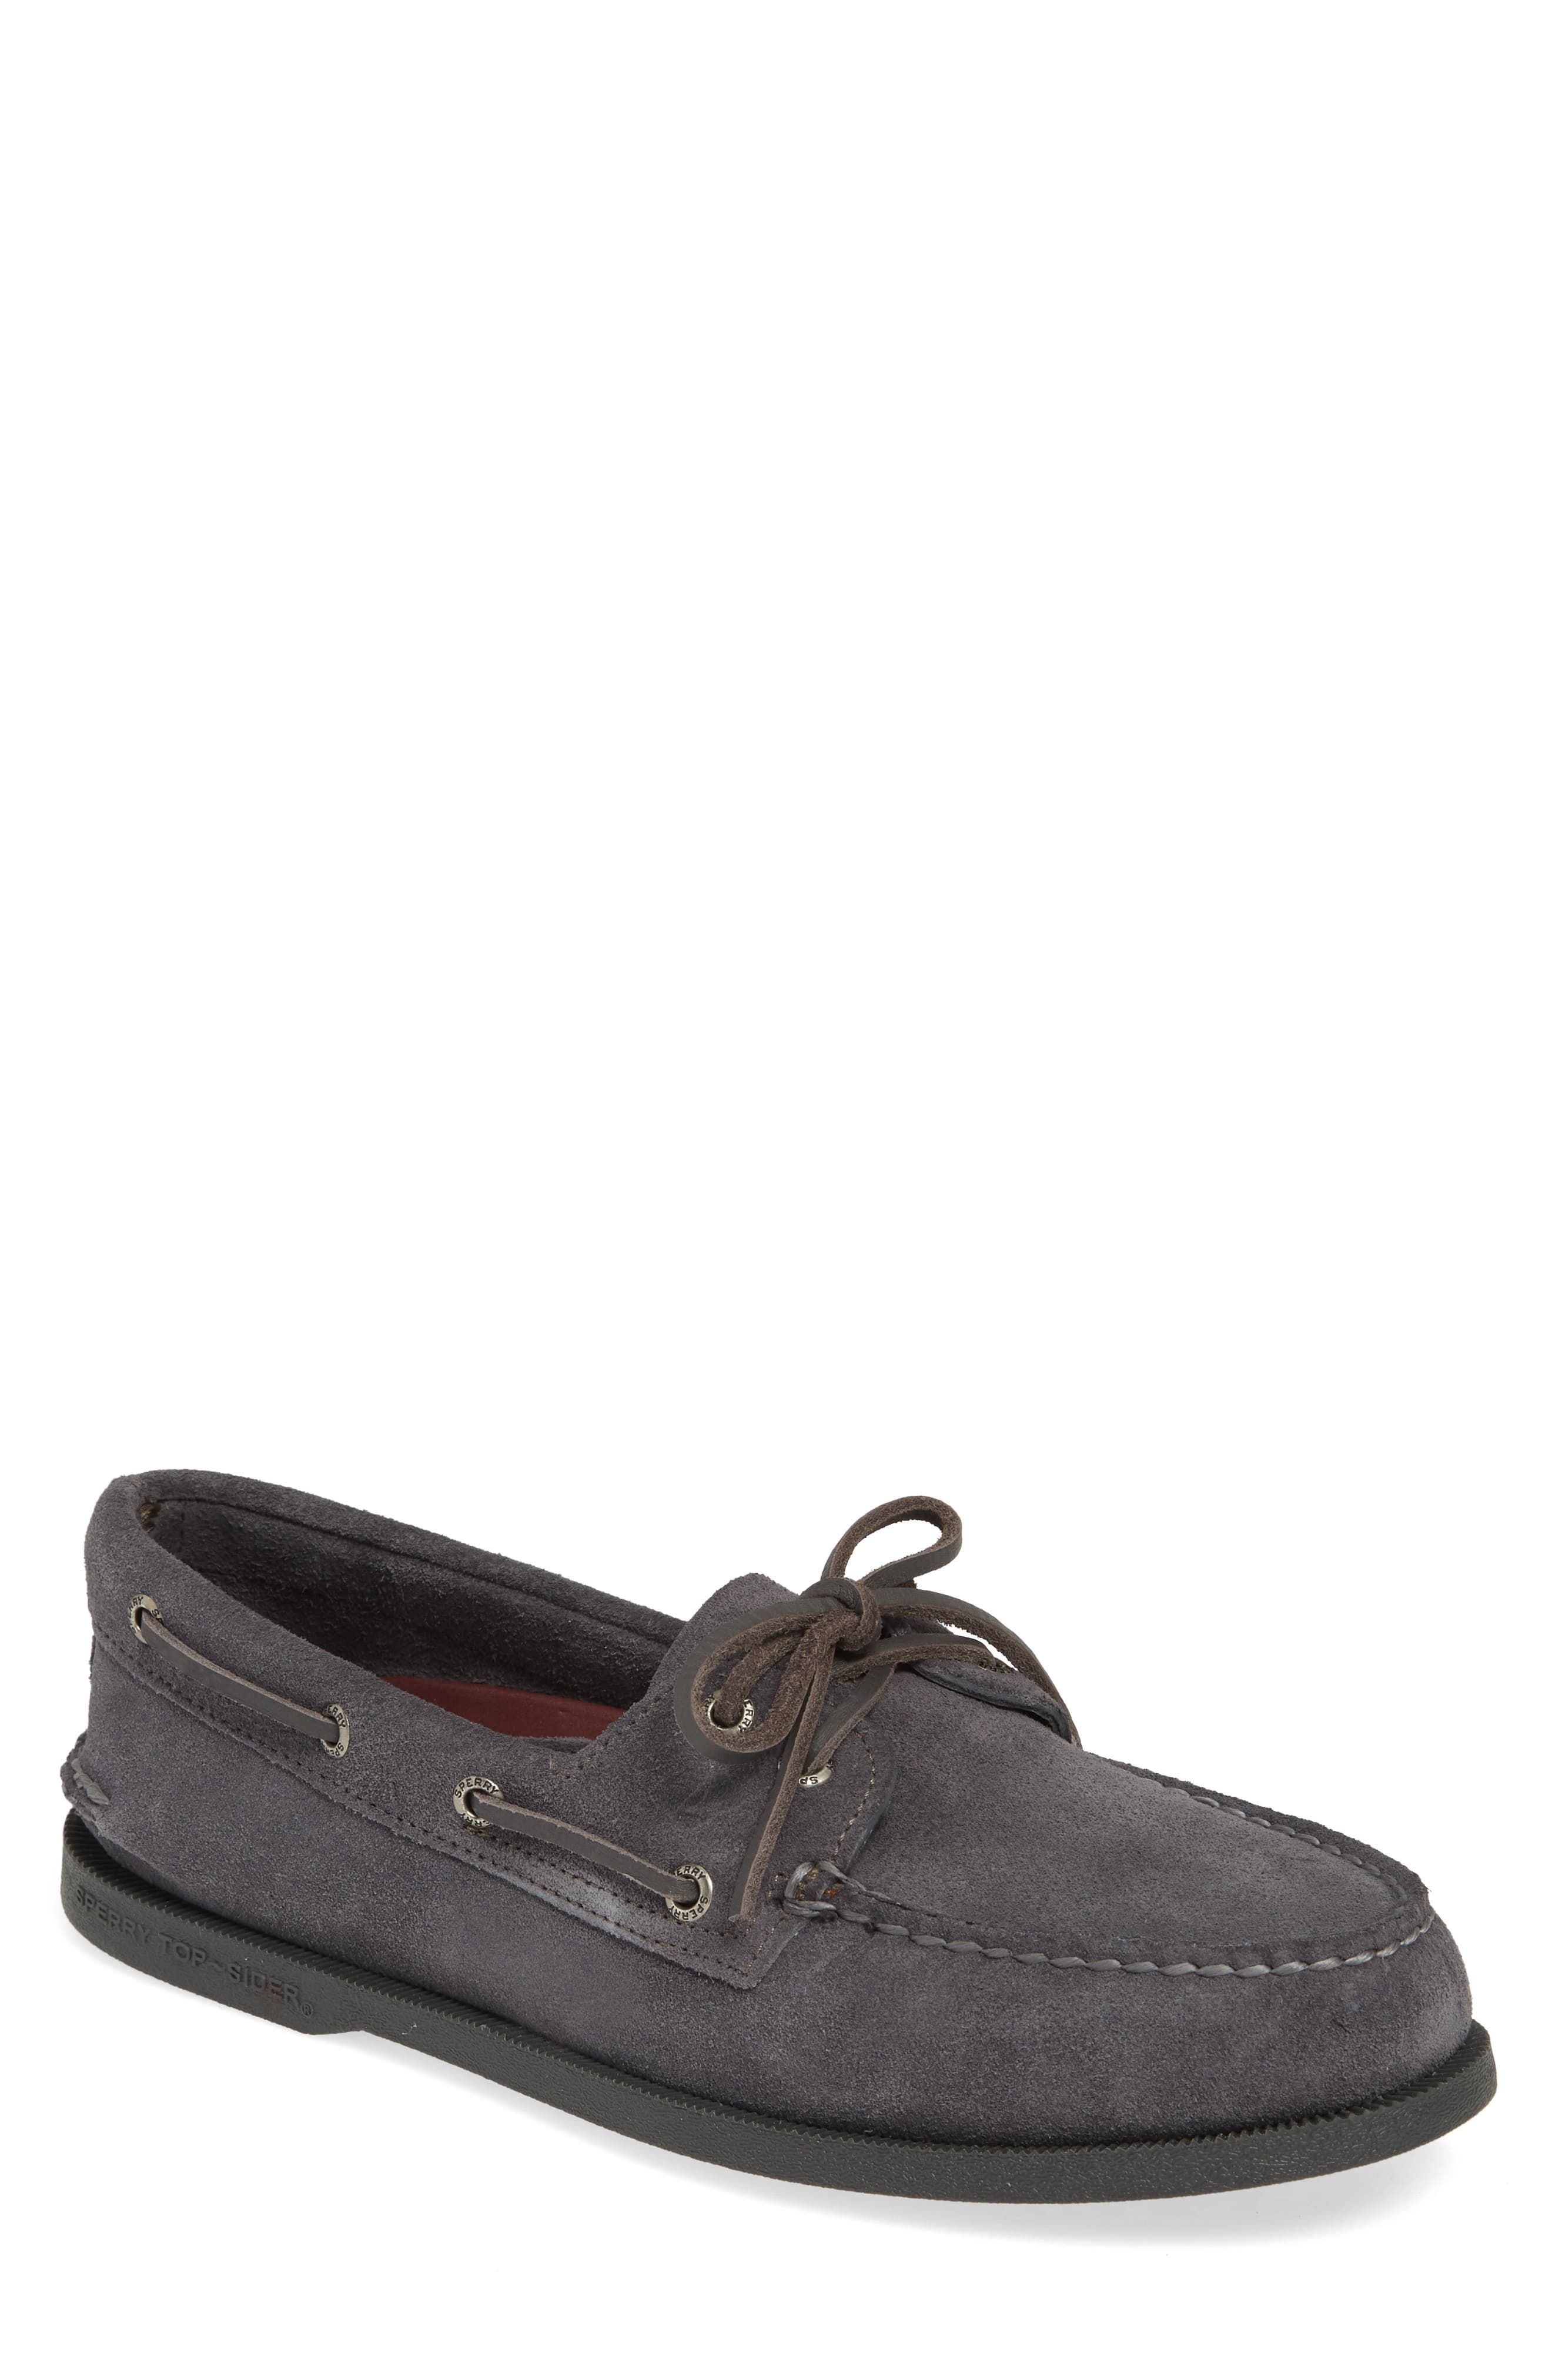 367ee64310362 Men's Sperry Top-Sider Ao 2 Boat Shoe, Size 9 M - Grey | Products in ...